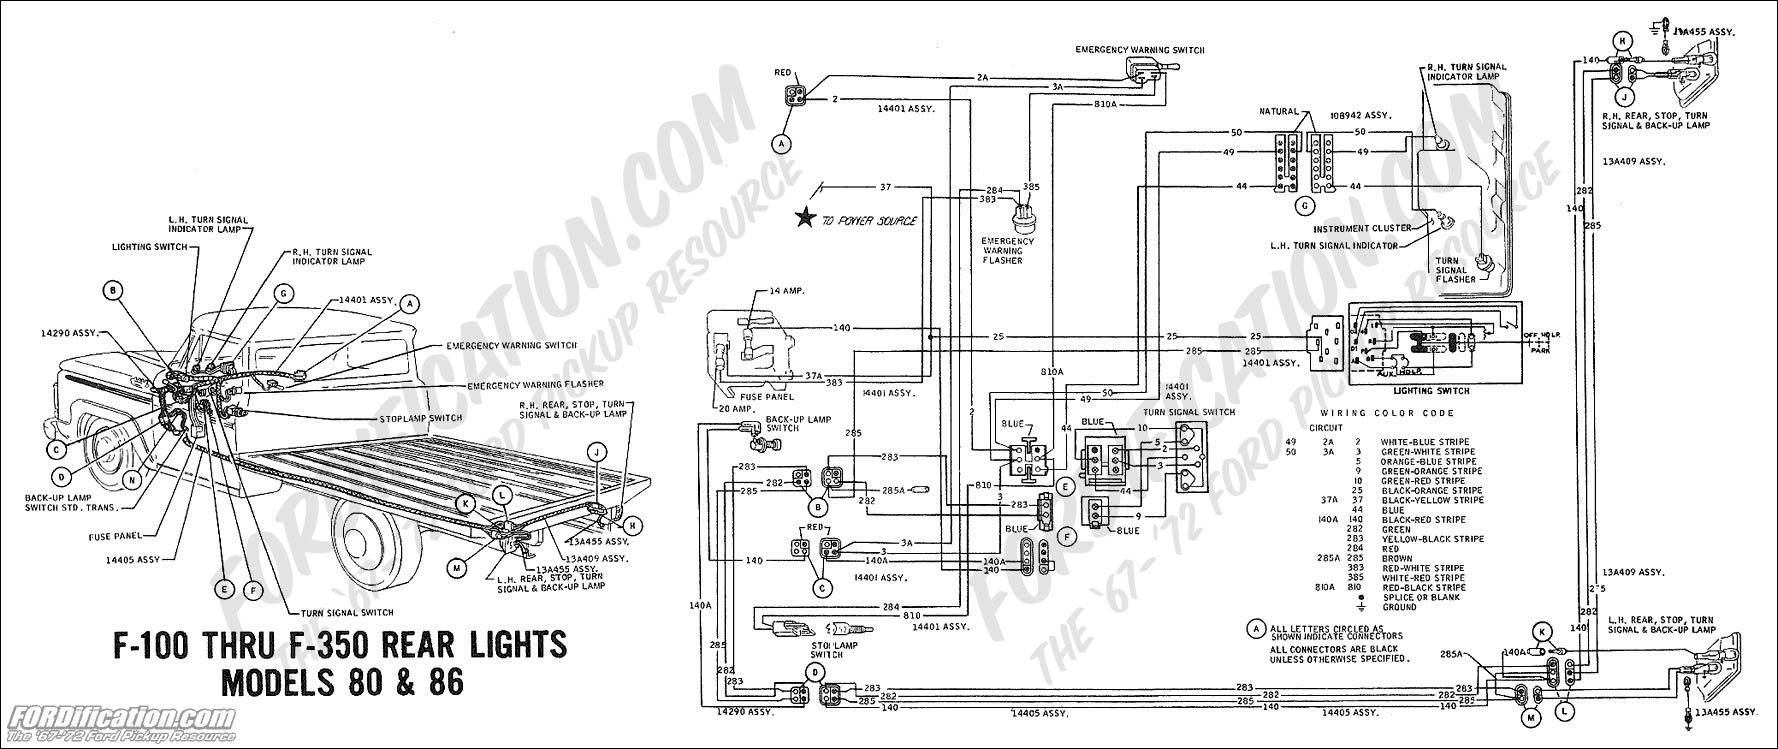 82752A6 1996 F350 Parking Light Wiring Diagram | Wiring ... on